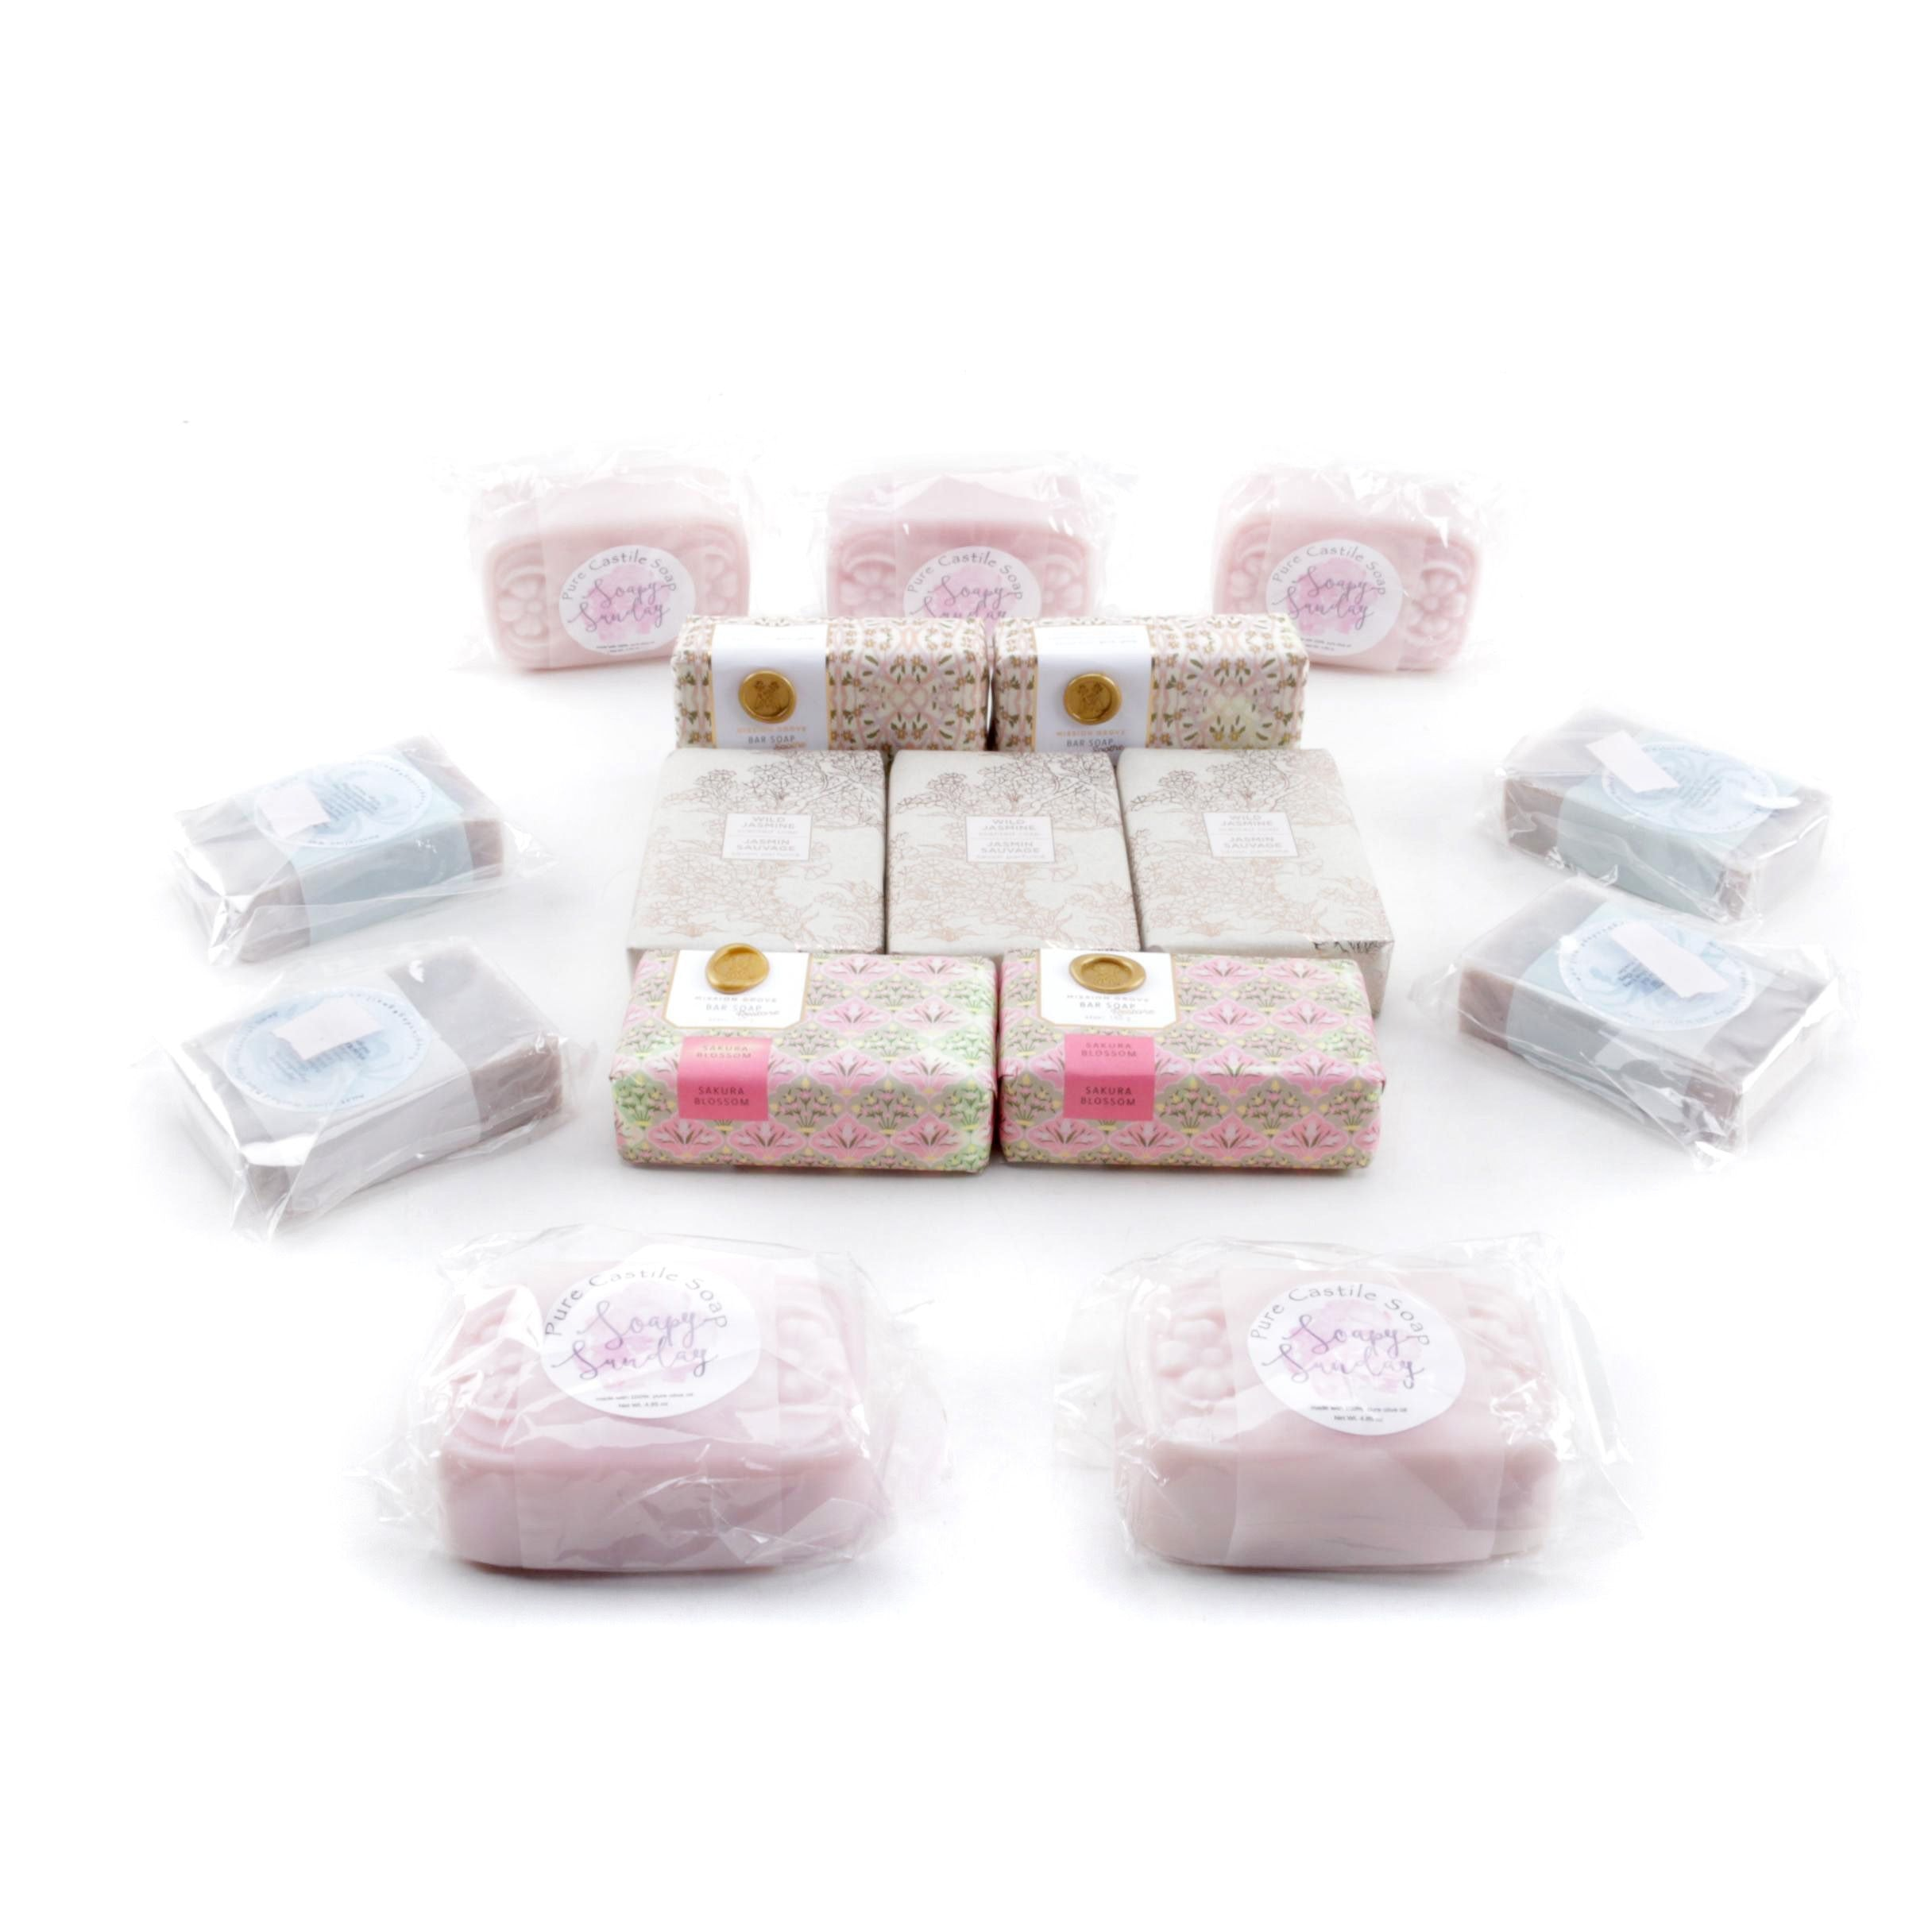 Bar Soap Including Mission Grove